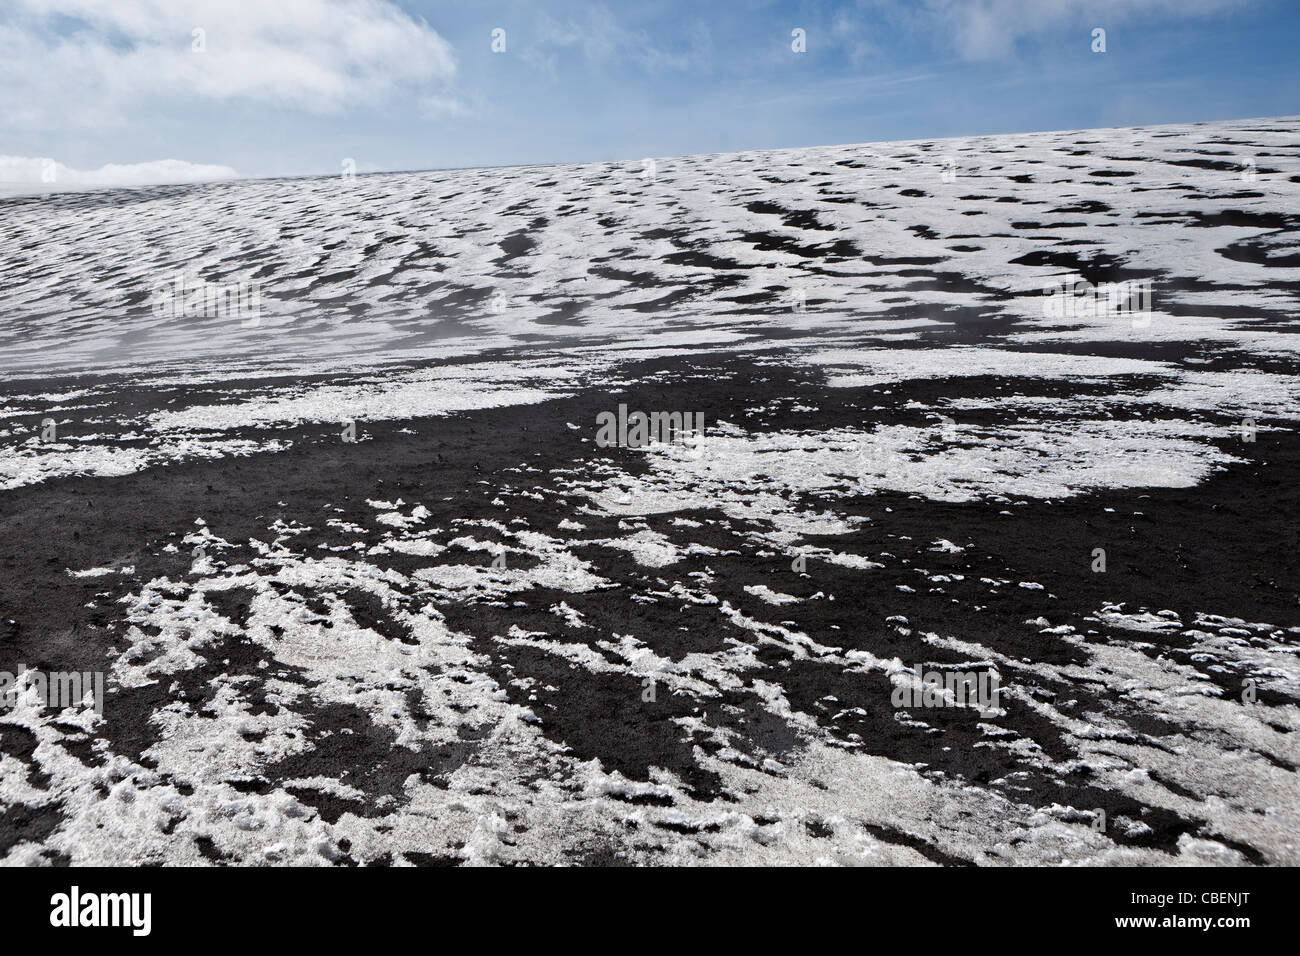 Ash covered glacier from the Grimsvotn eruption, Vatanjokull Ice Cap, Iceland - Stock Image